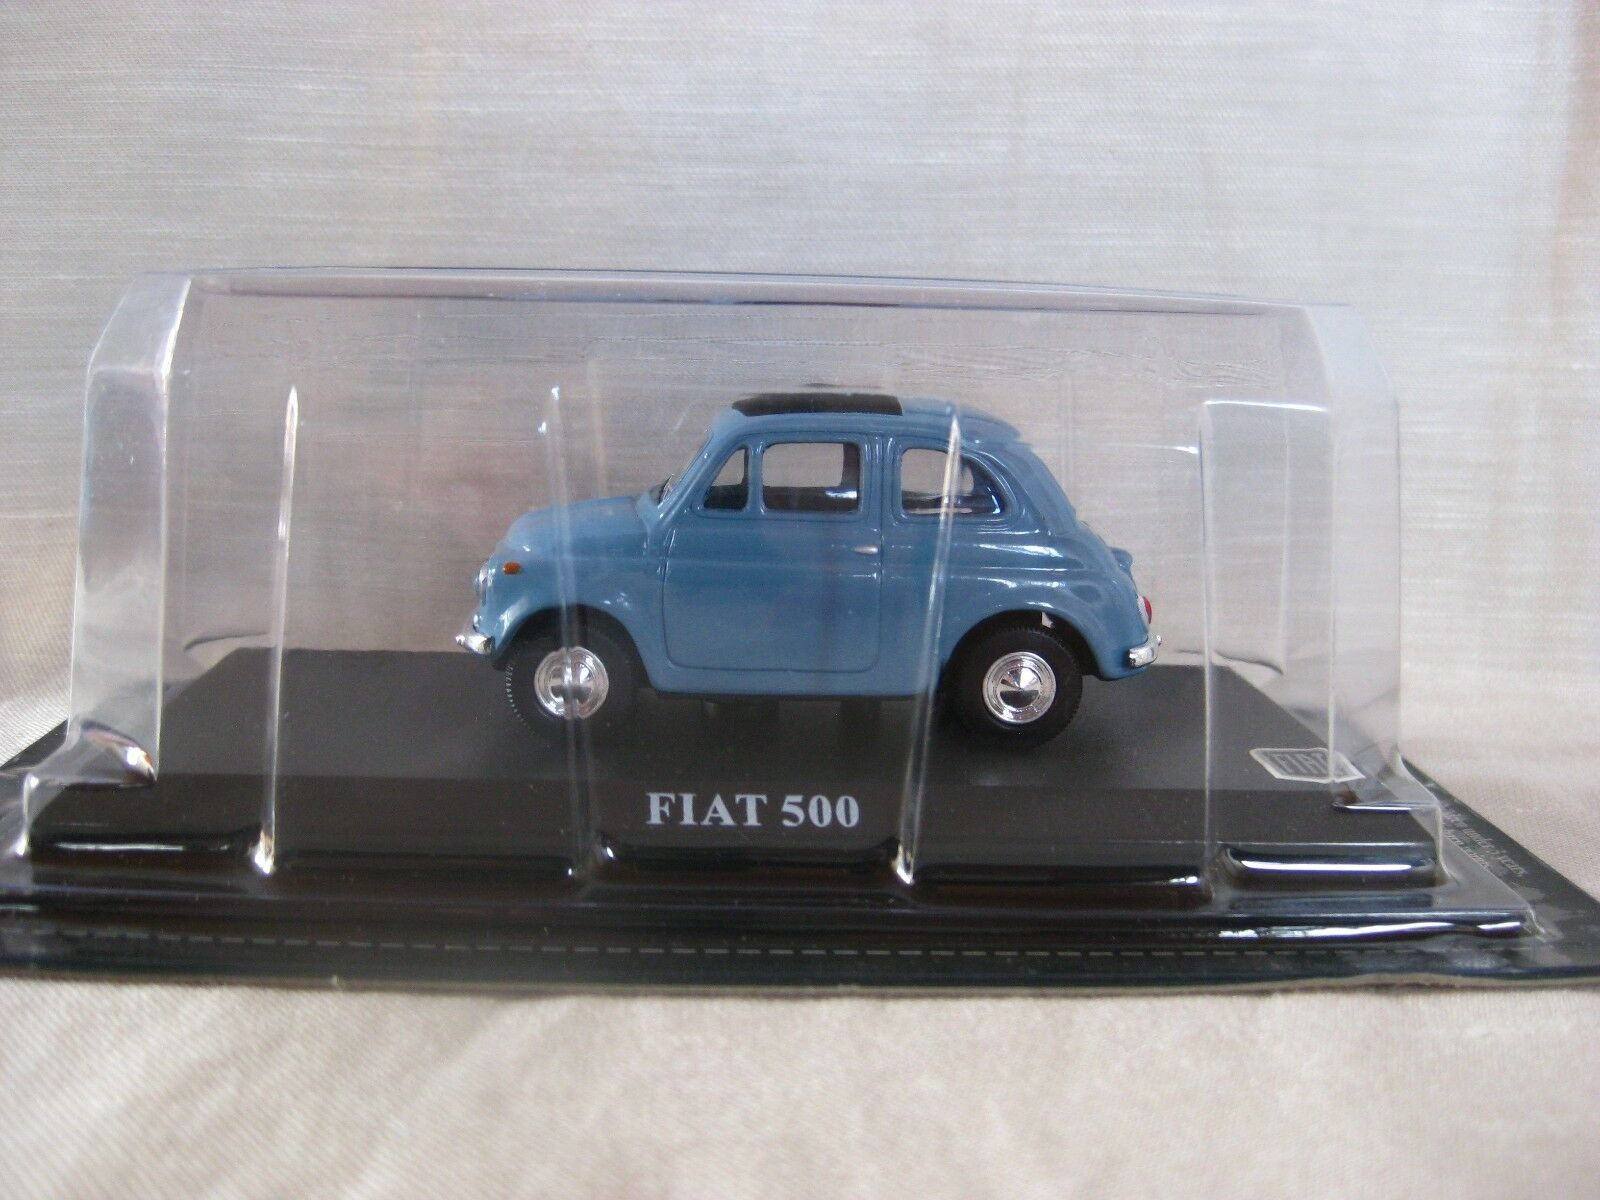 Fiat 500 Light bleu 1 43 DIE CAST MODEL 20th Siècle Grande voitures collection